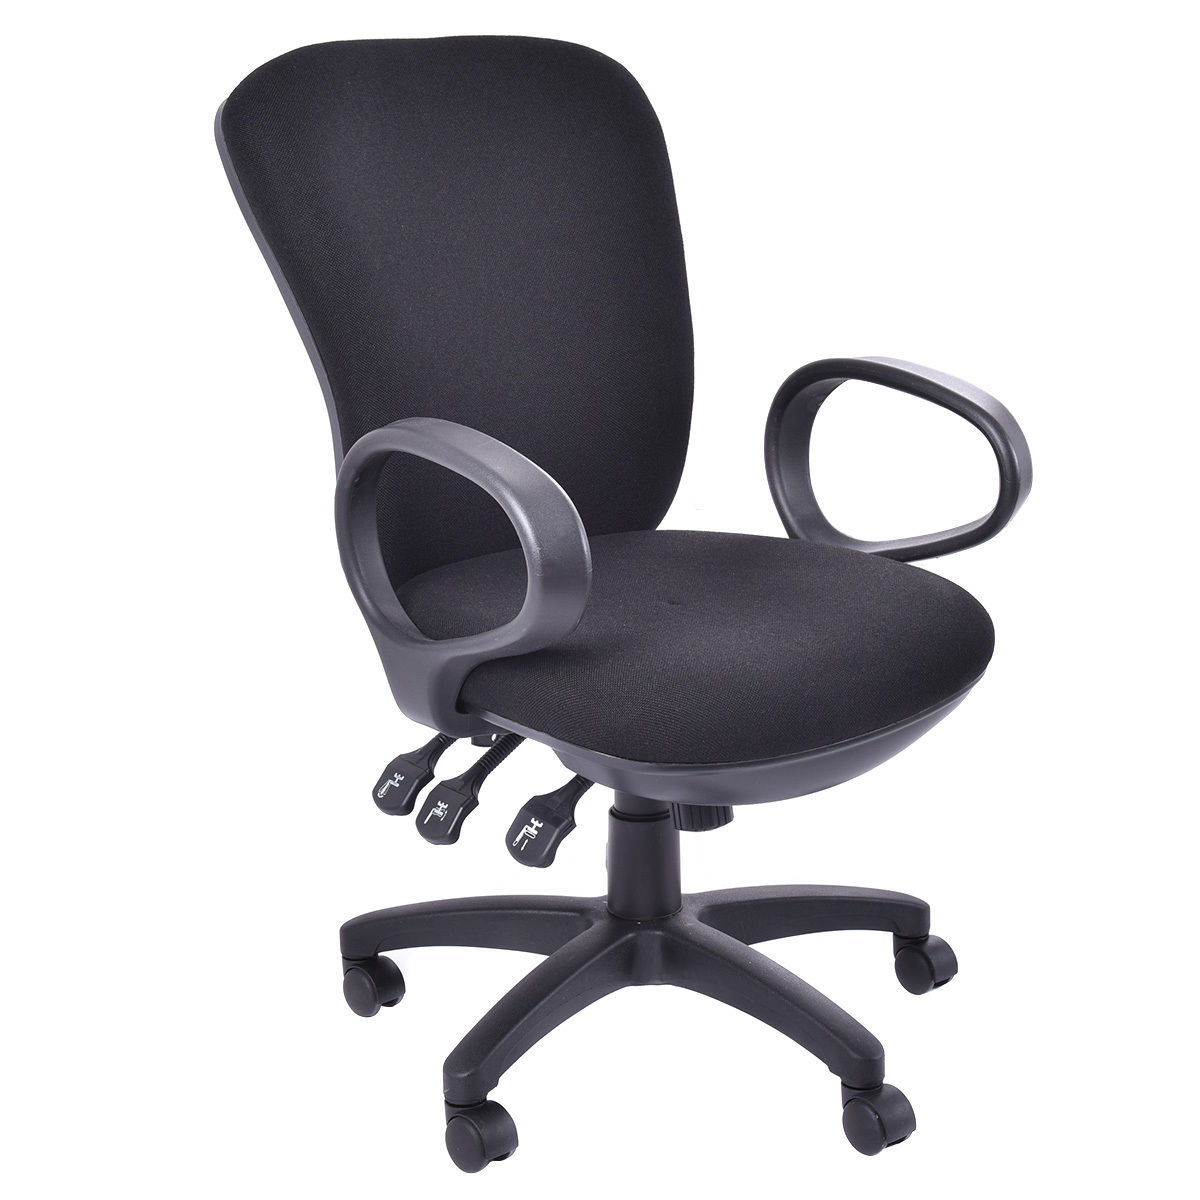 Giantex Mordern Ergonomic Mid-Back Gamign Chair Executive Computer Desk Task Office Chair Black Swivel furniture HW52597